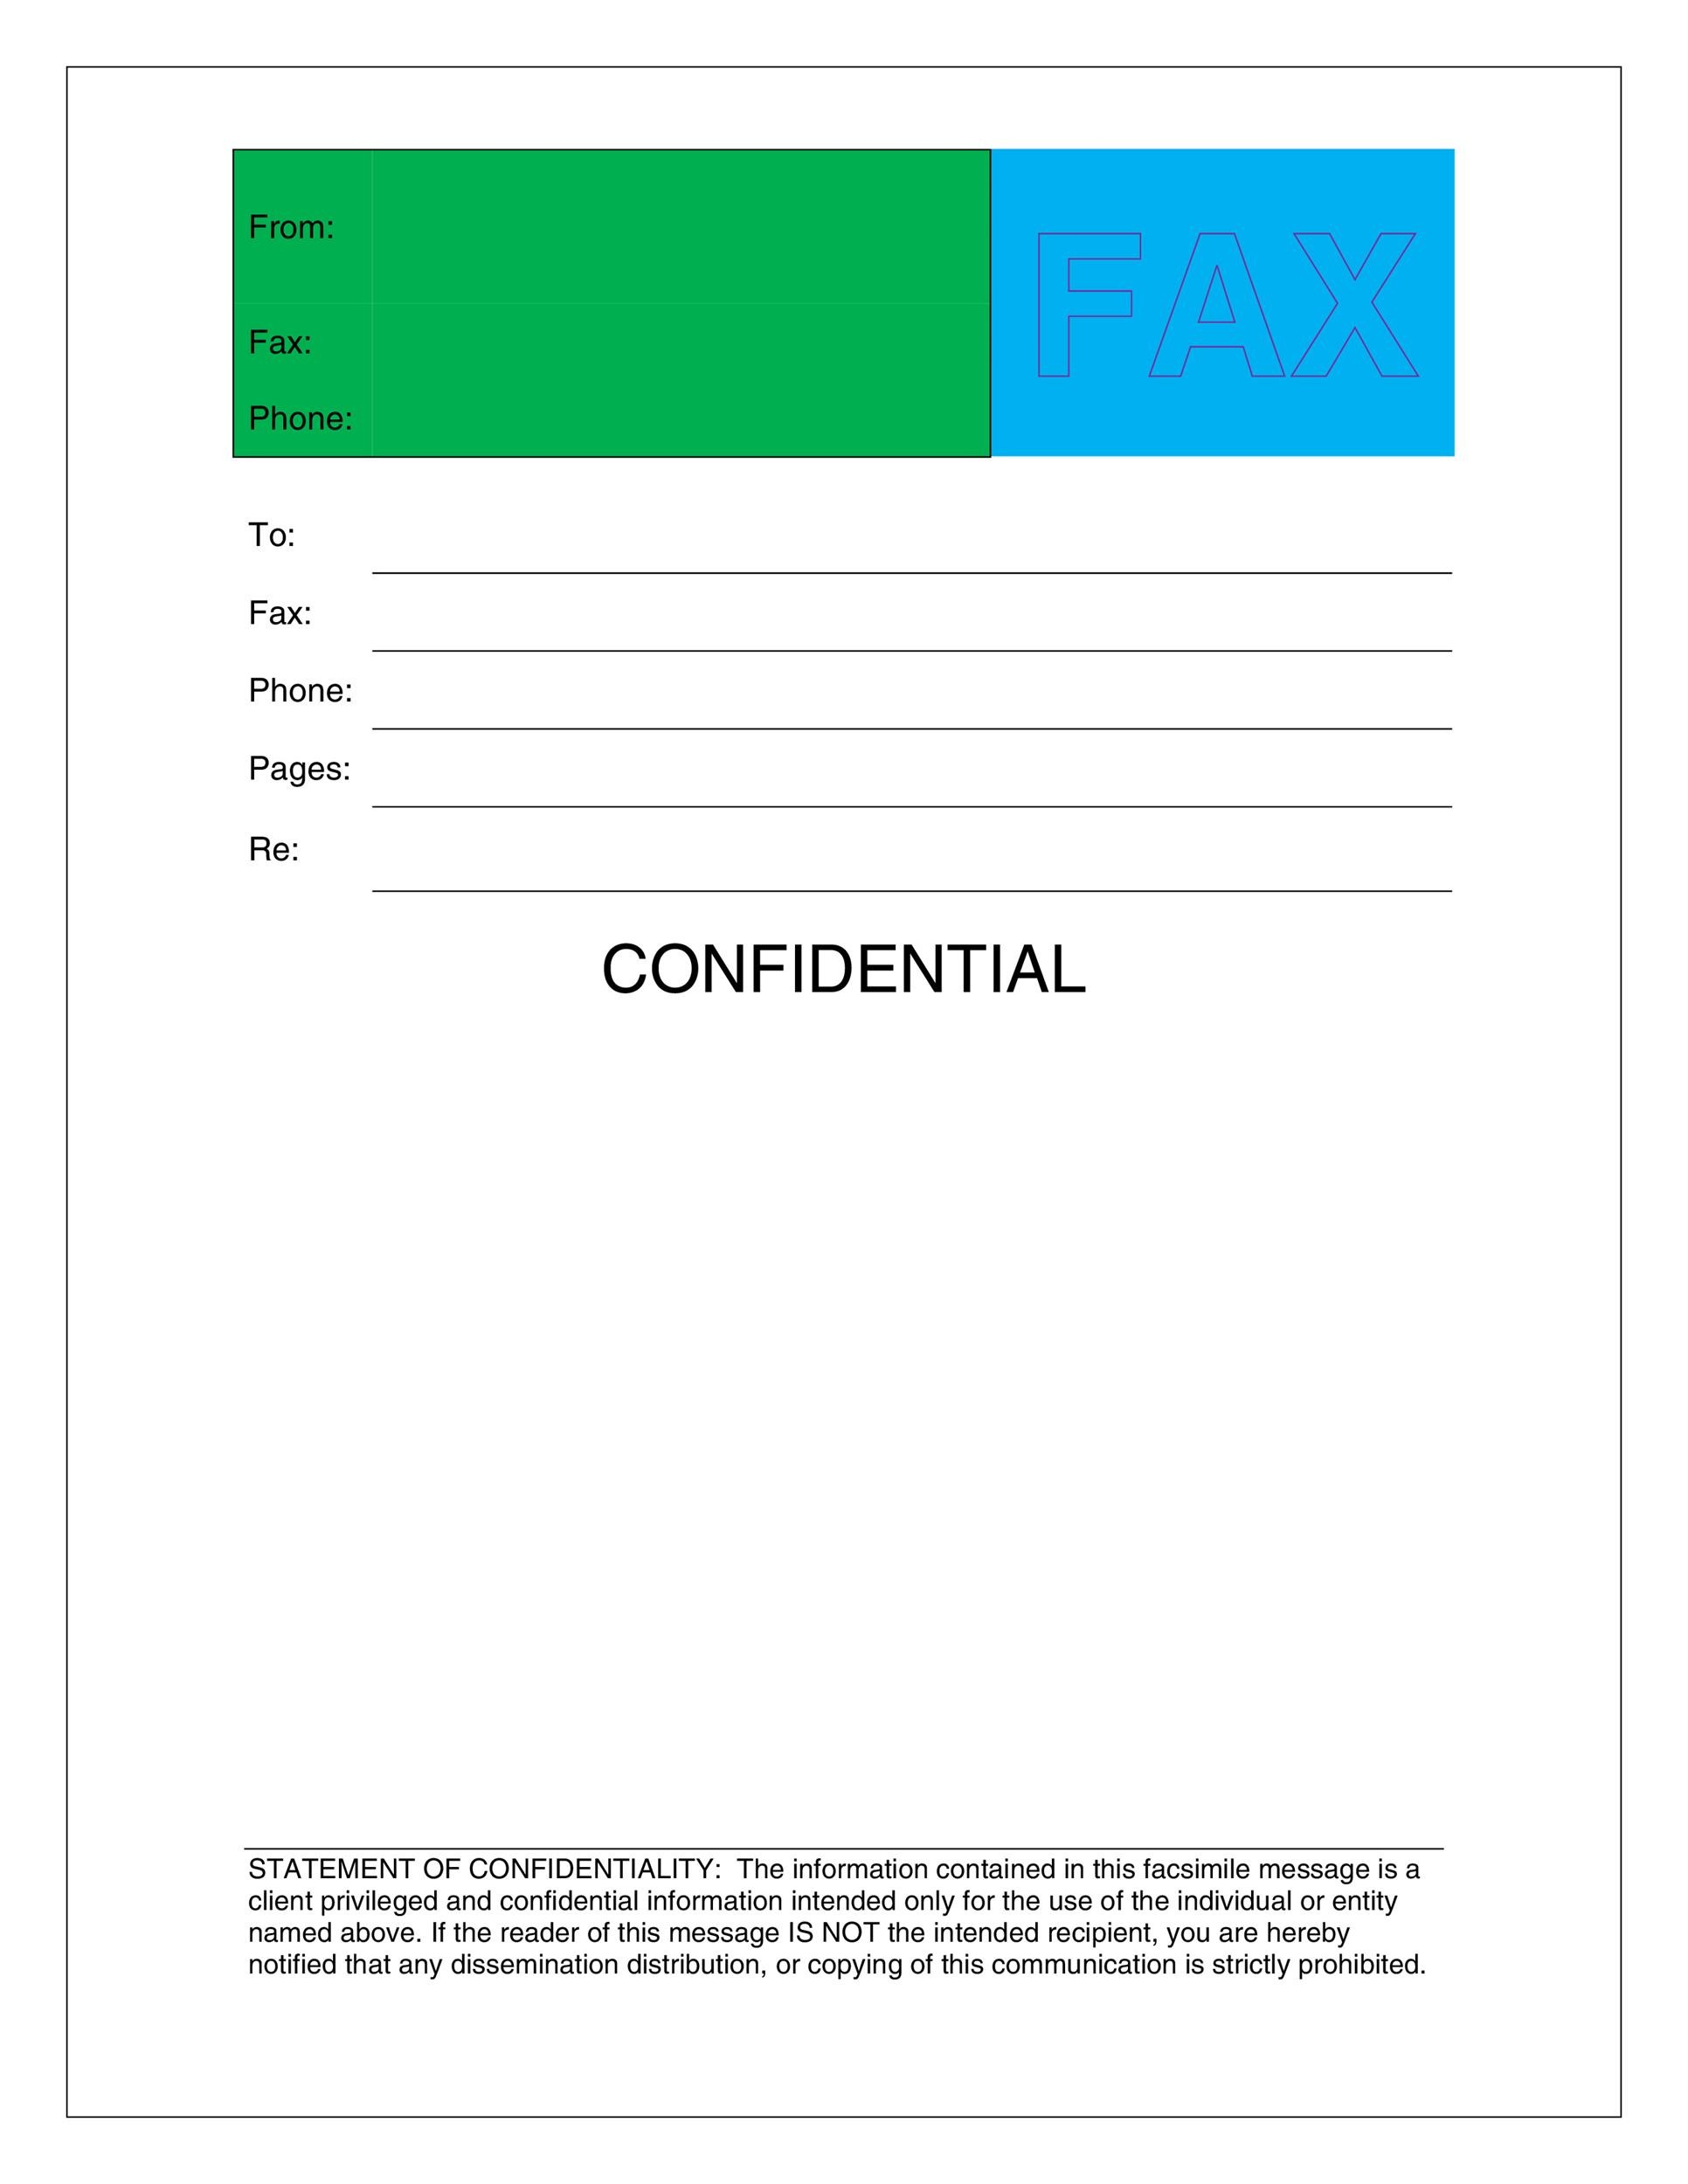 Blank Fax Cover Sheets Fax Cover Sheet Template Health